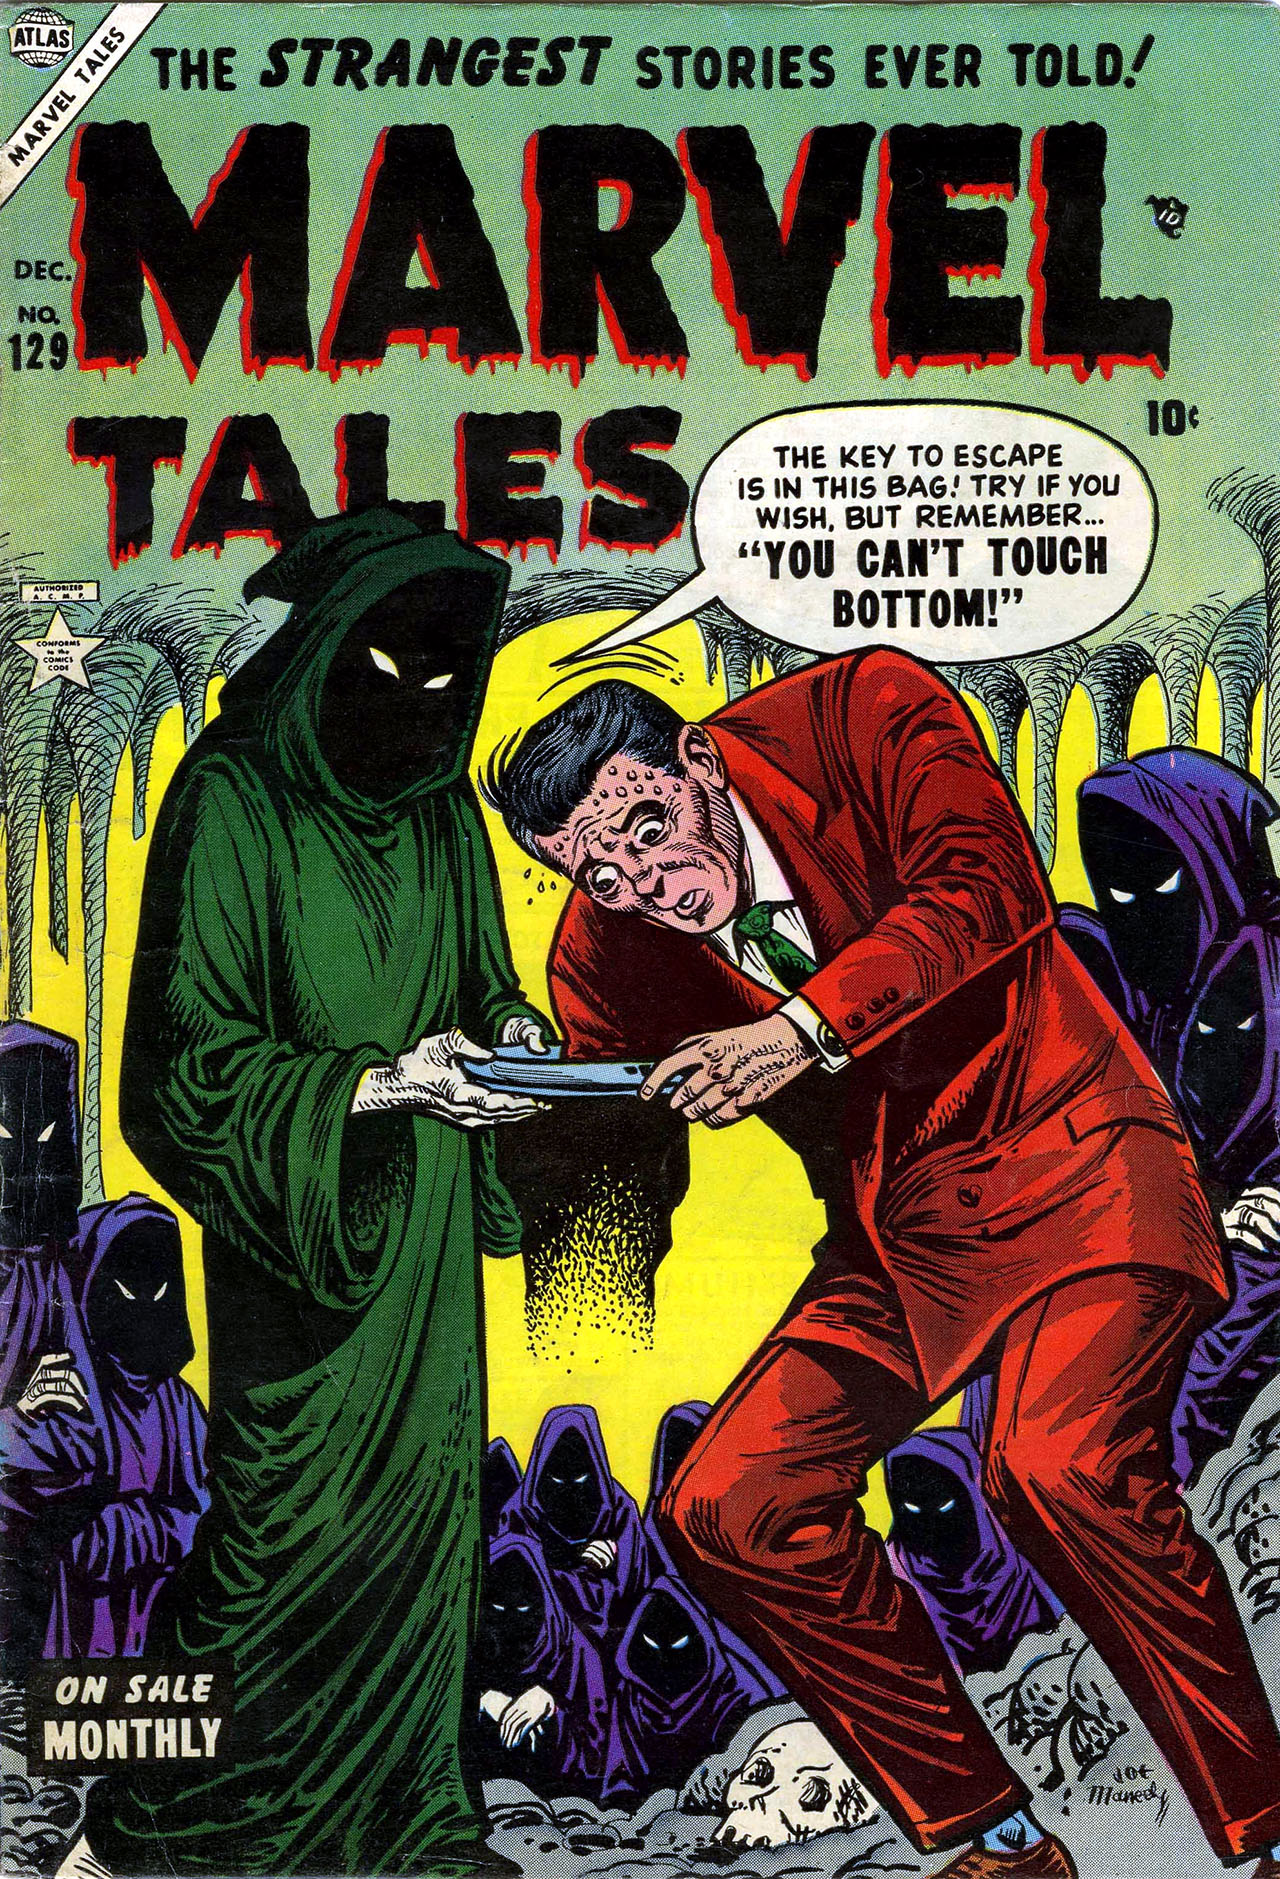 Marvel Tales (1949) 129 Page 1